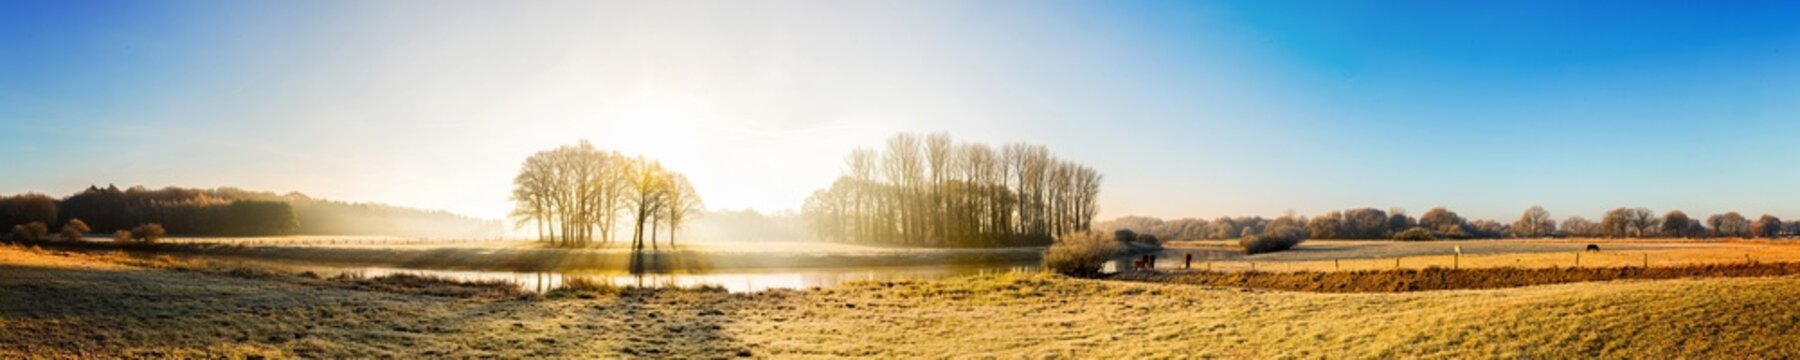 Beautiful panorama of an autumn landscape at sunrise with river, forest and horses on a meadow